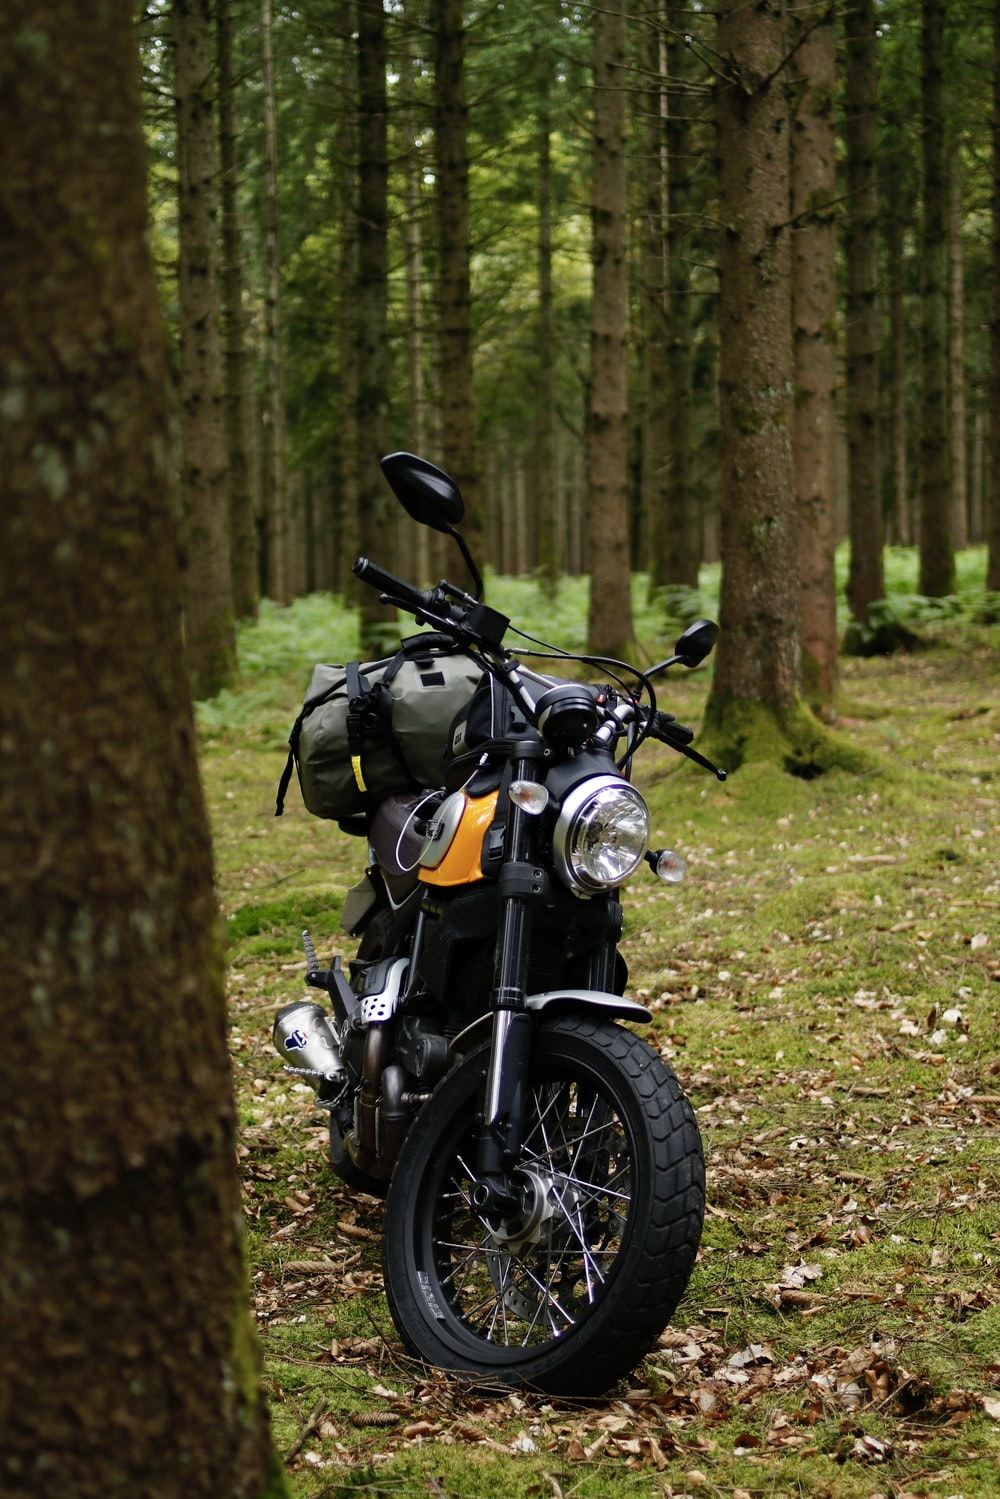 black and silver cruiser motorcycle parked beside brown tree trunk during daytime